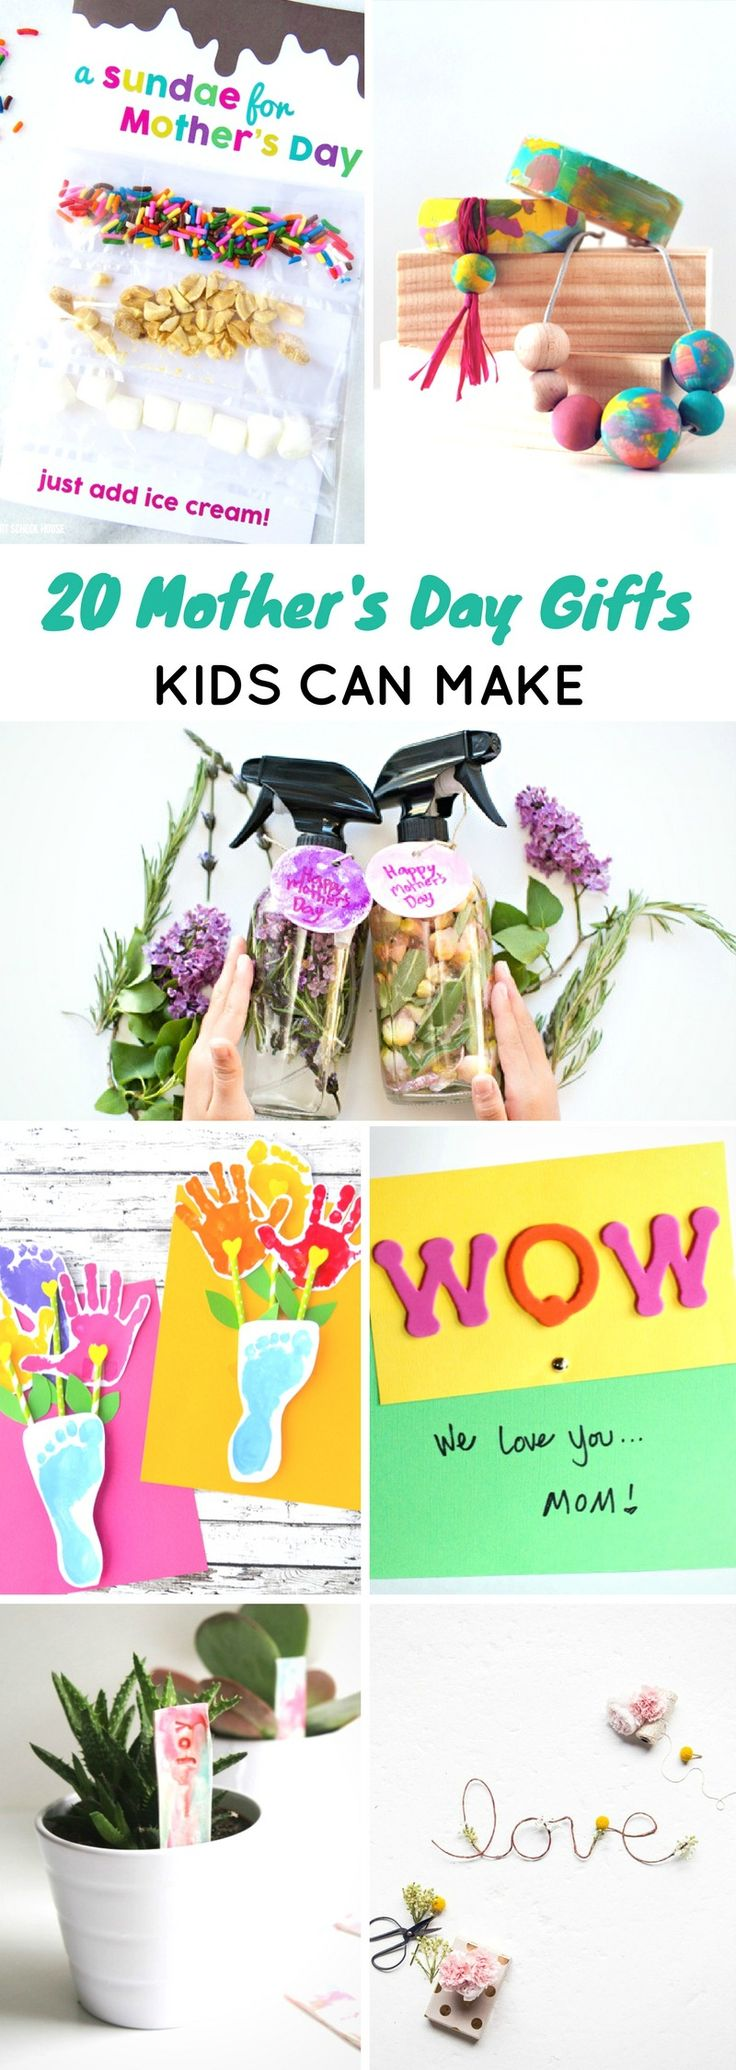 20 Mothers Day Gifts Kids Can Make #mothersday